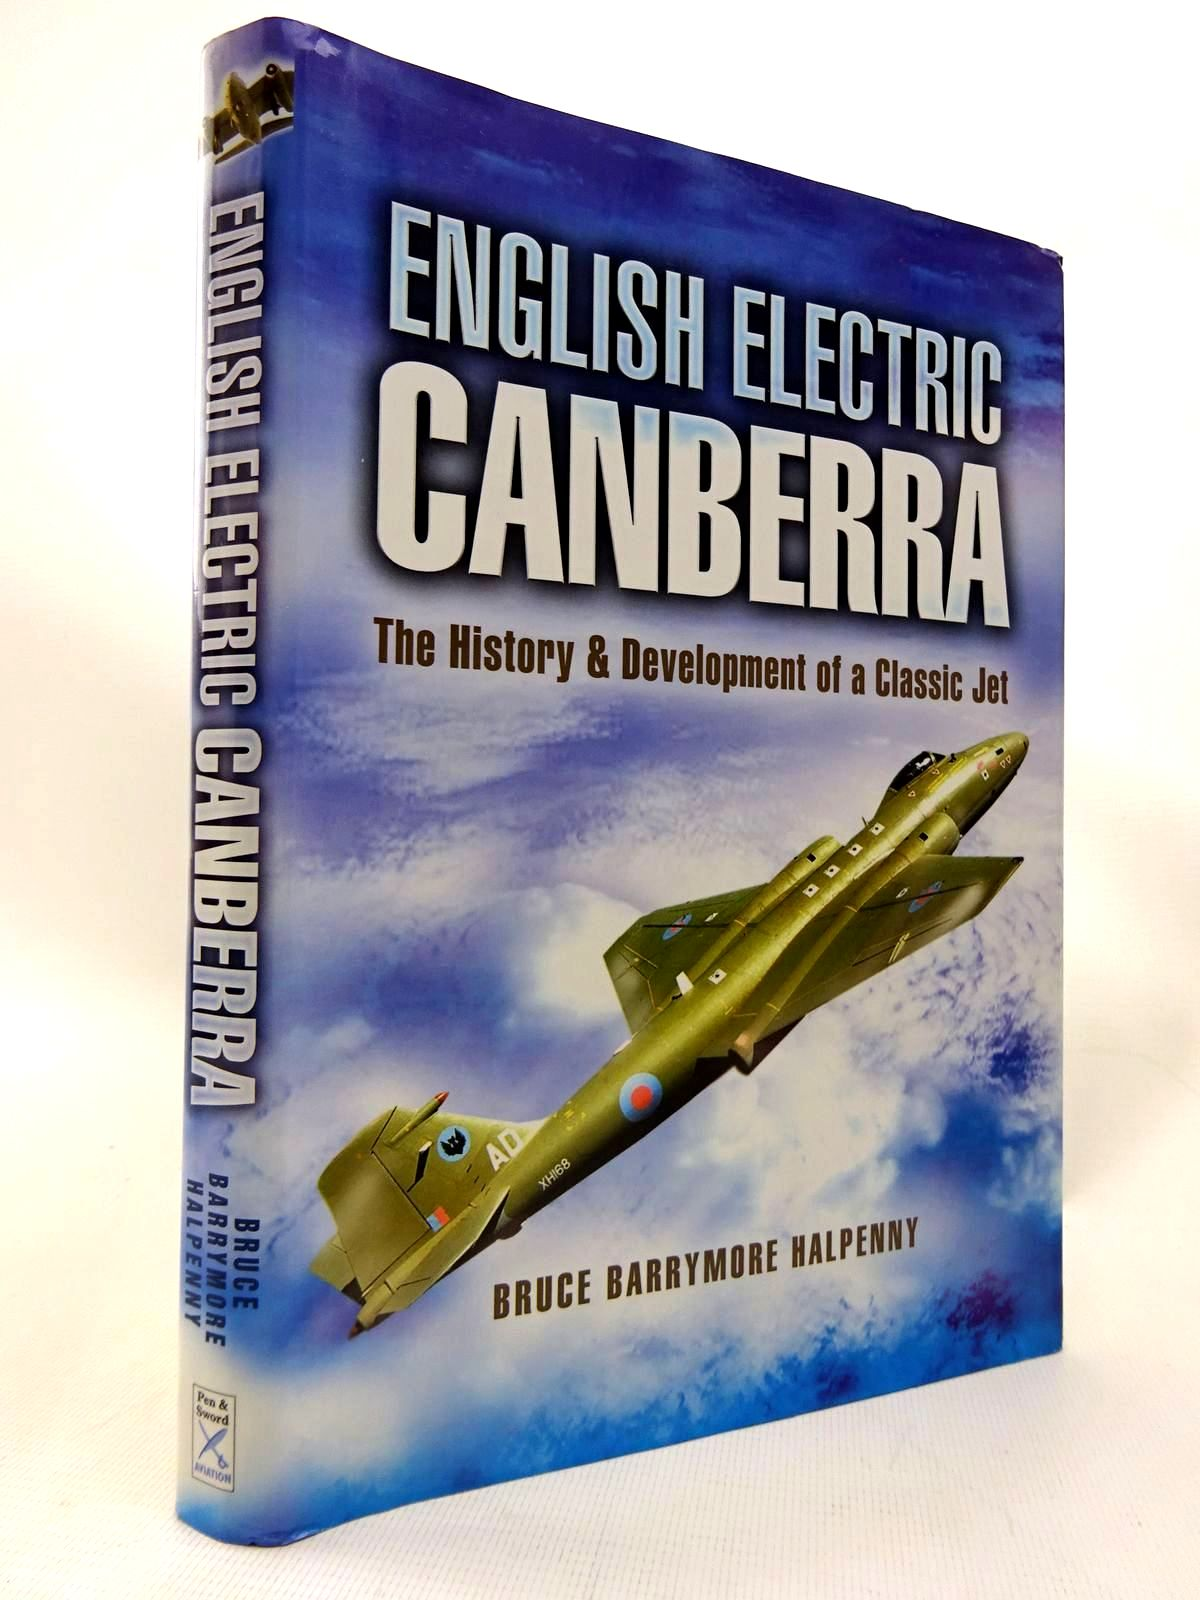 Photo of ENGLISH ELECTRIC CANBERRA: THE HISTORY AND DEVELOPMENT OF A CLASSIC JET written by Halpenny, Bruce Barrymore published by Pen & Sword Aviation (STOCK CODE: 1815818)  for sale by Stella & Rose's Books